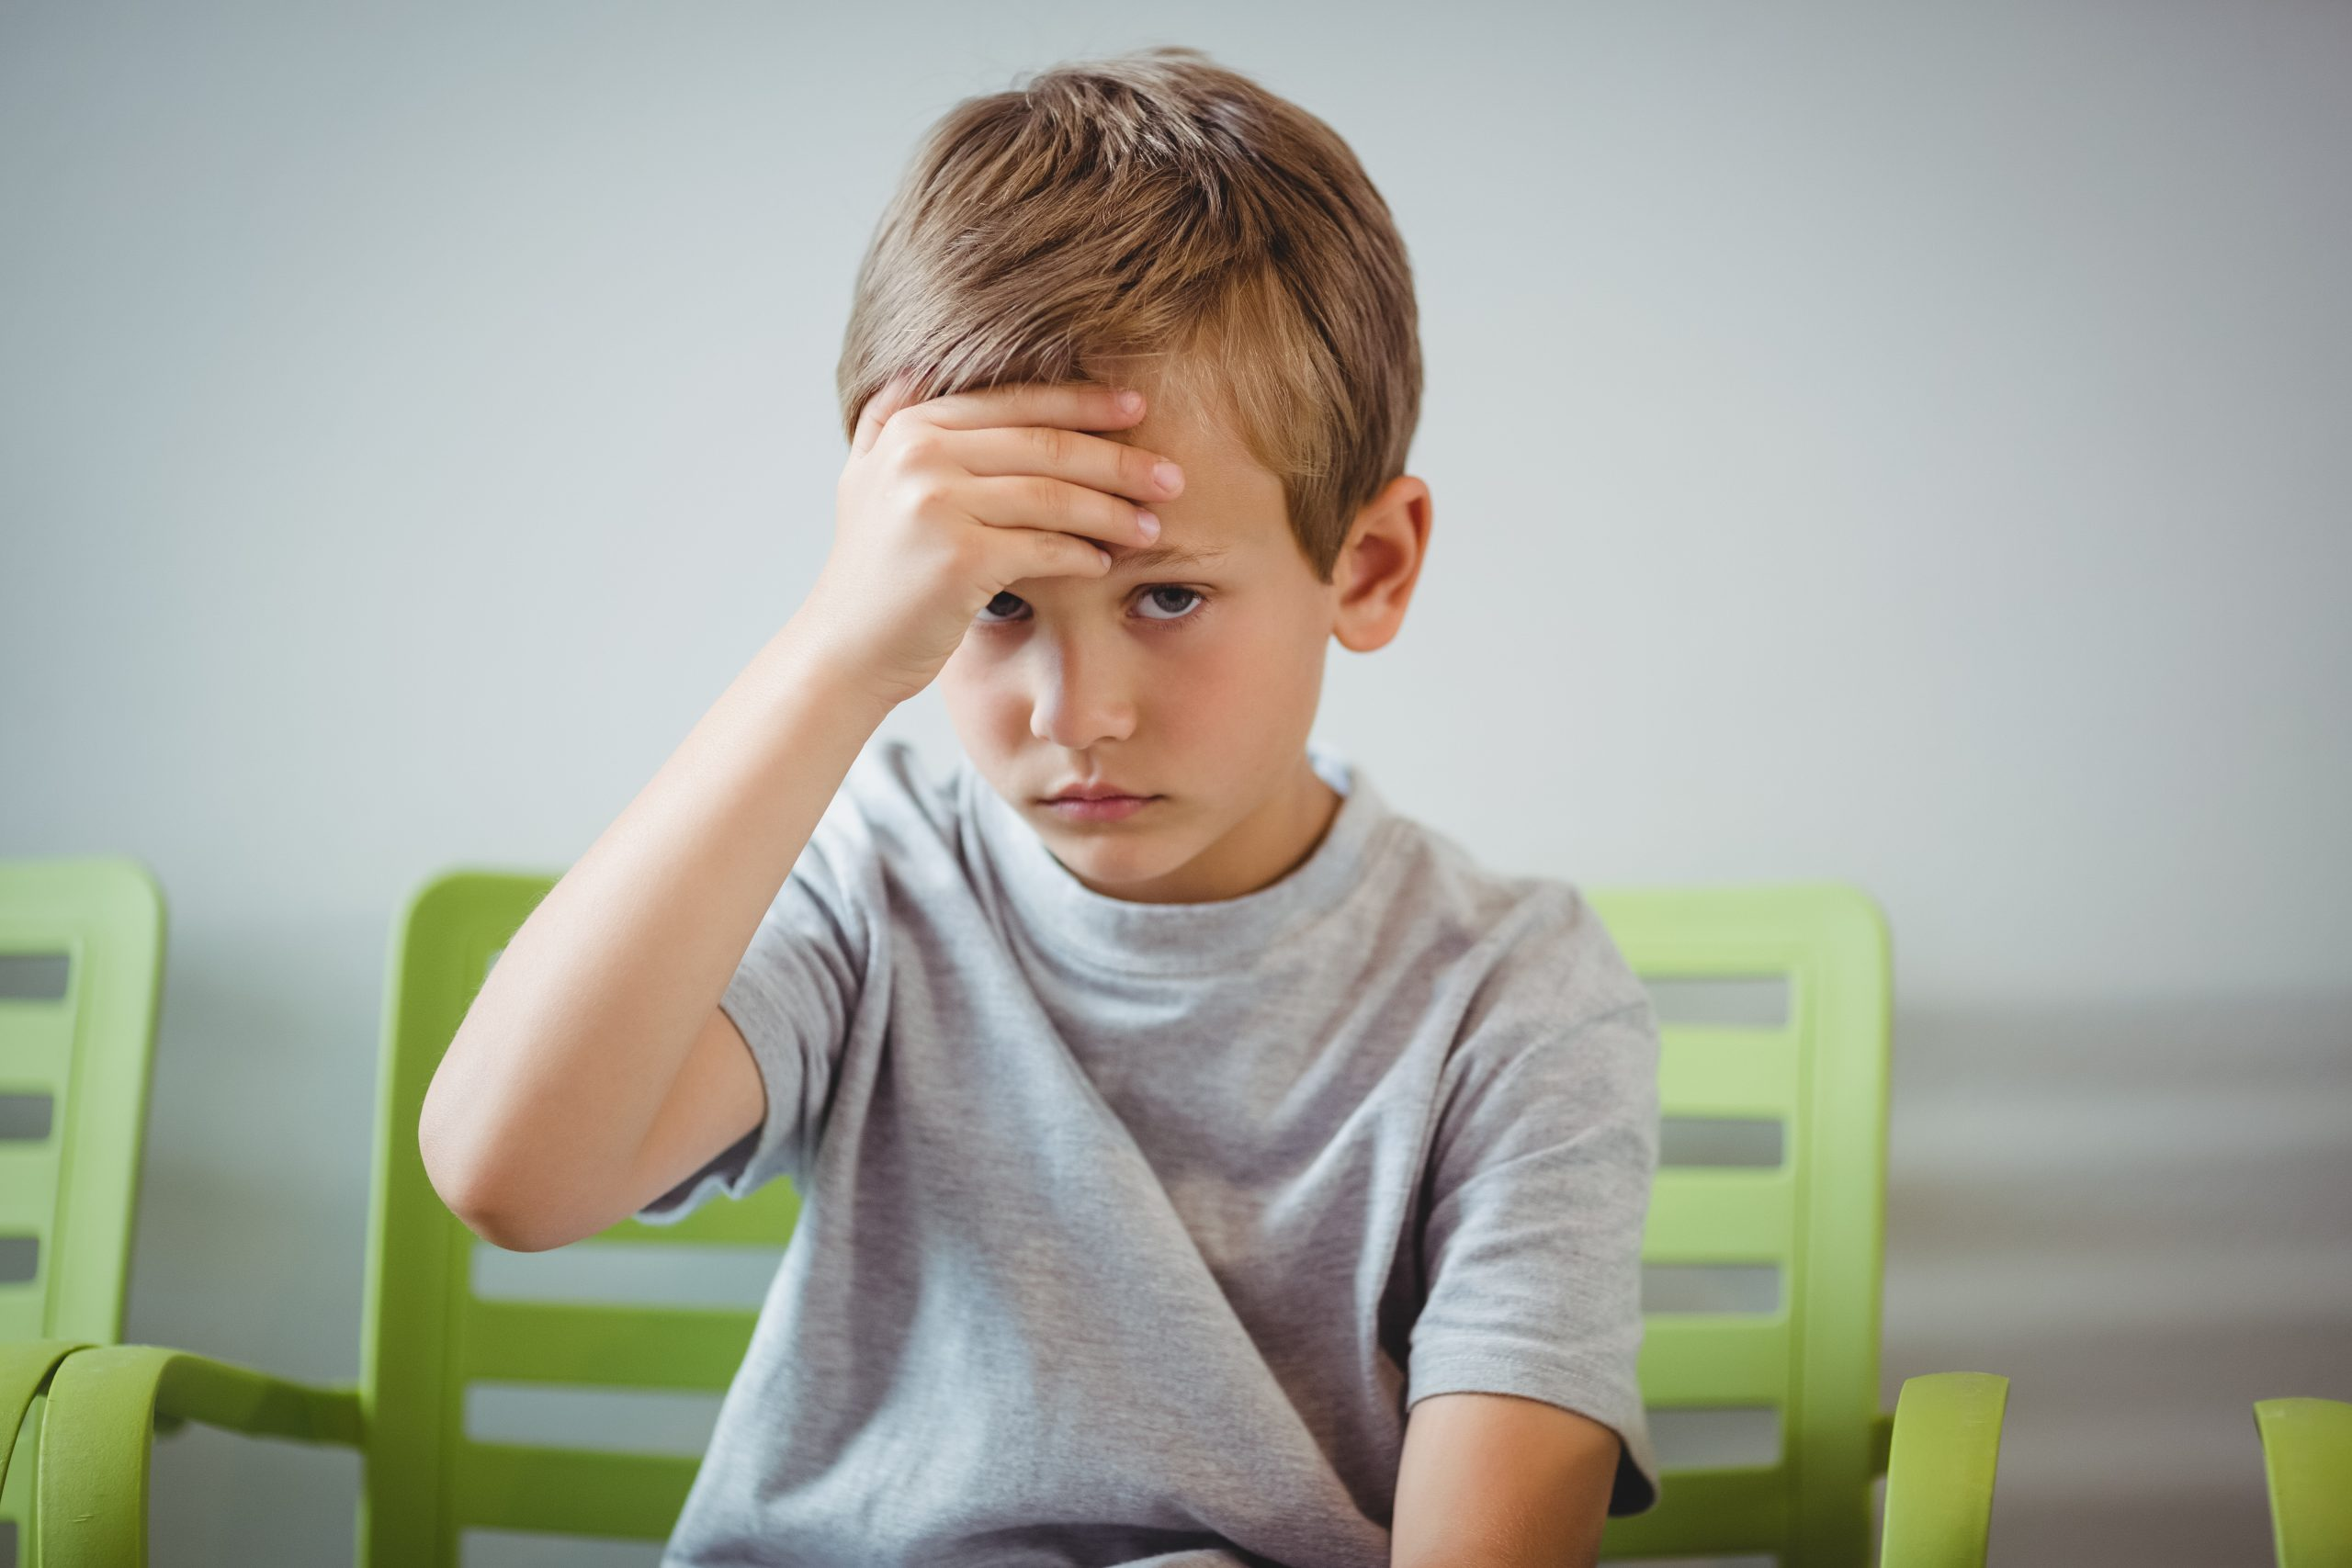 Portrait of upset boy sitting on chair in corridor at hospital